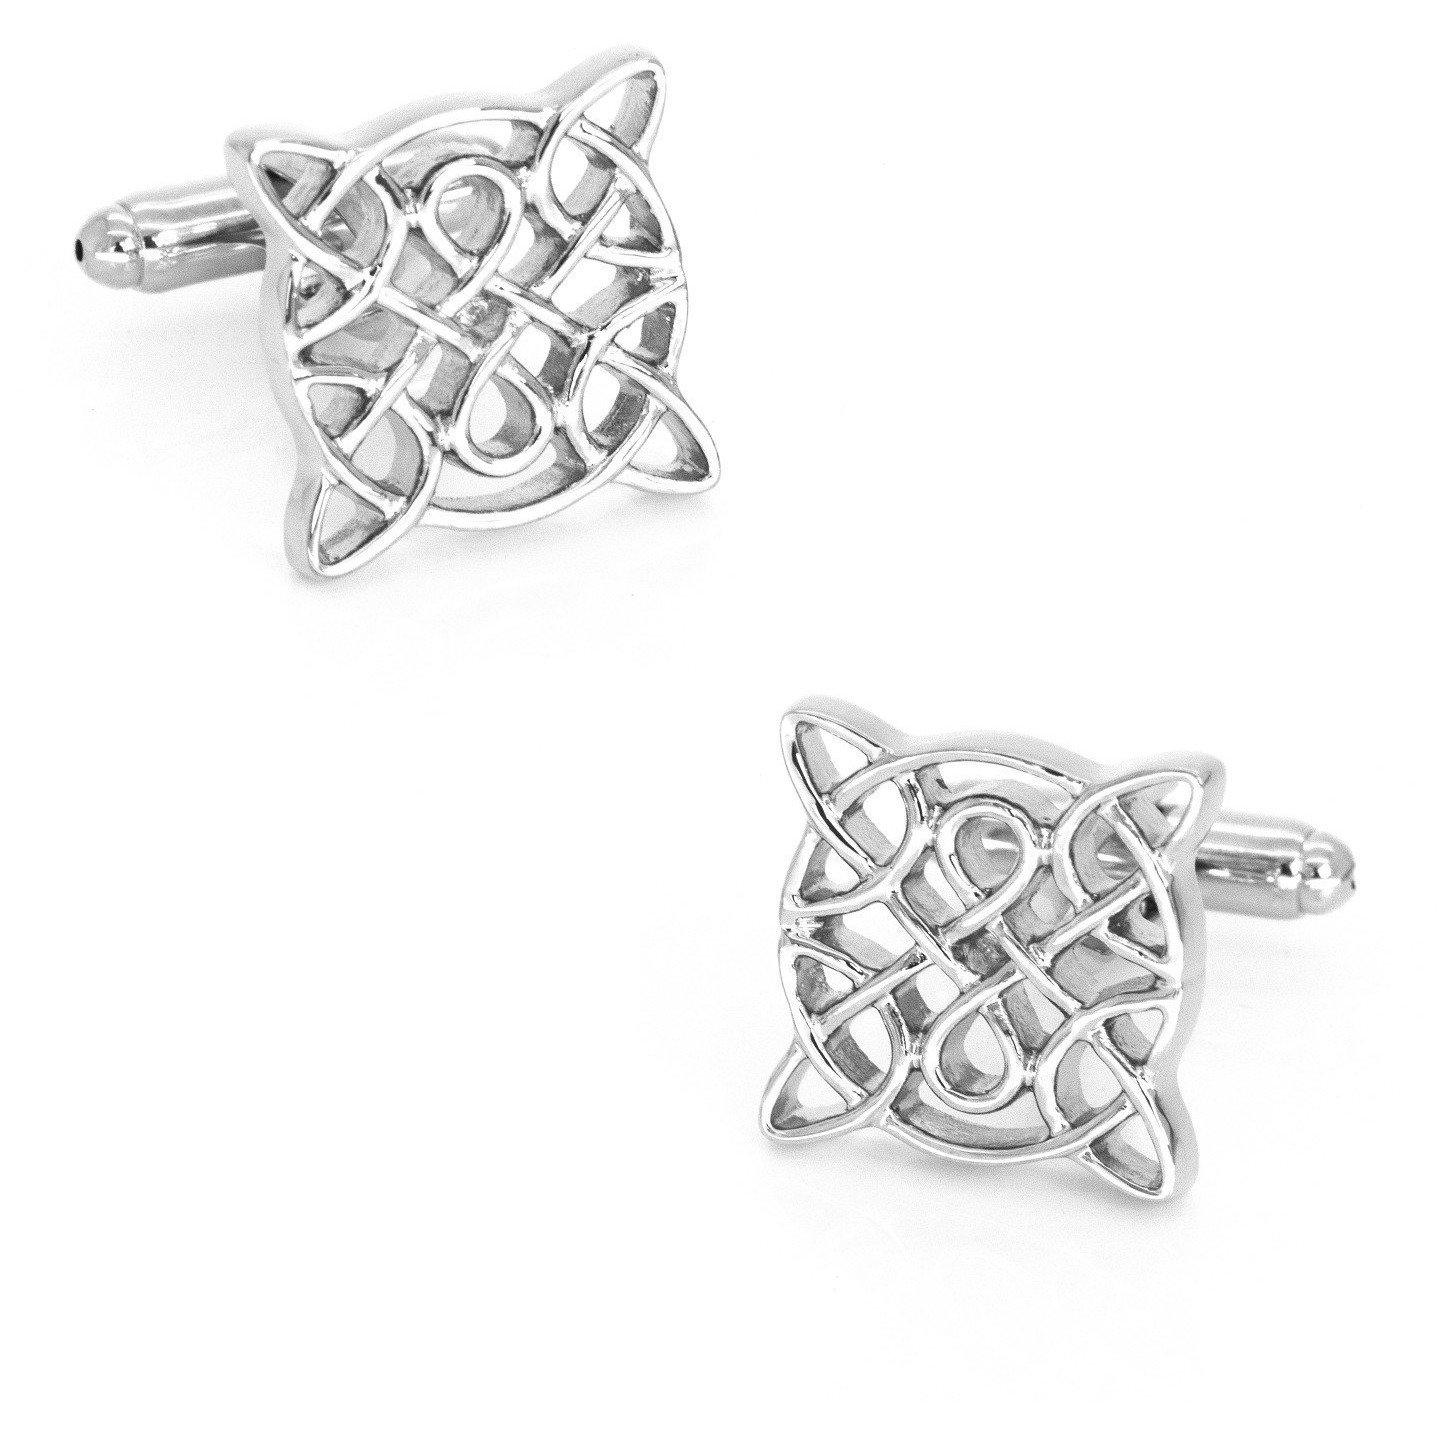 Silver Celtic Square Knot Cufflinks, Novelty Cufflinks, Cuffed.com.au, CL9331, $29.00